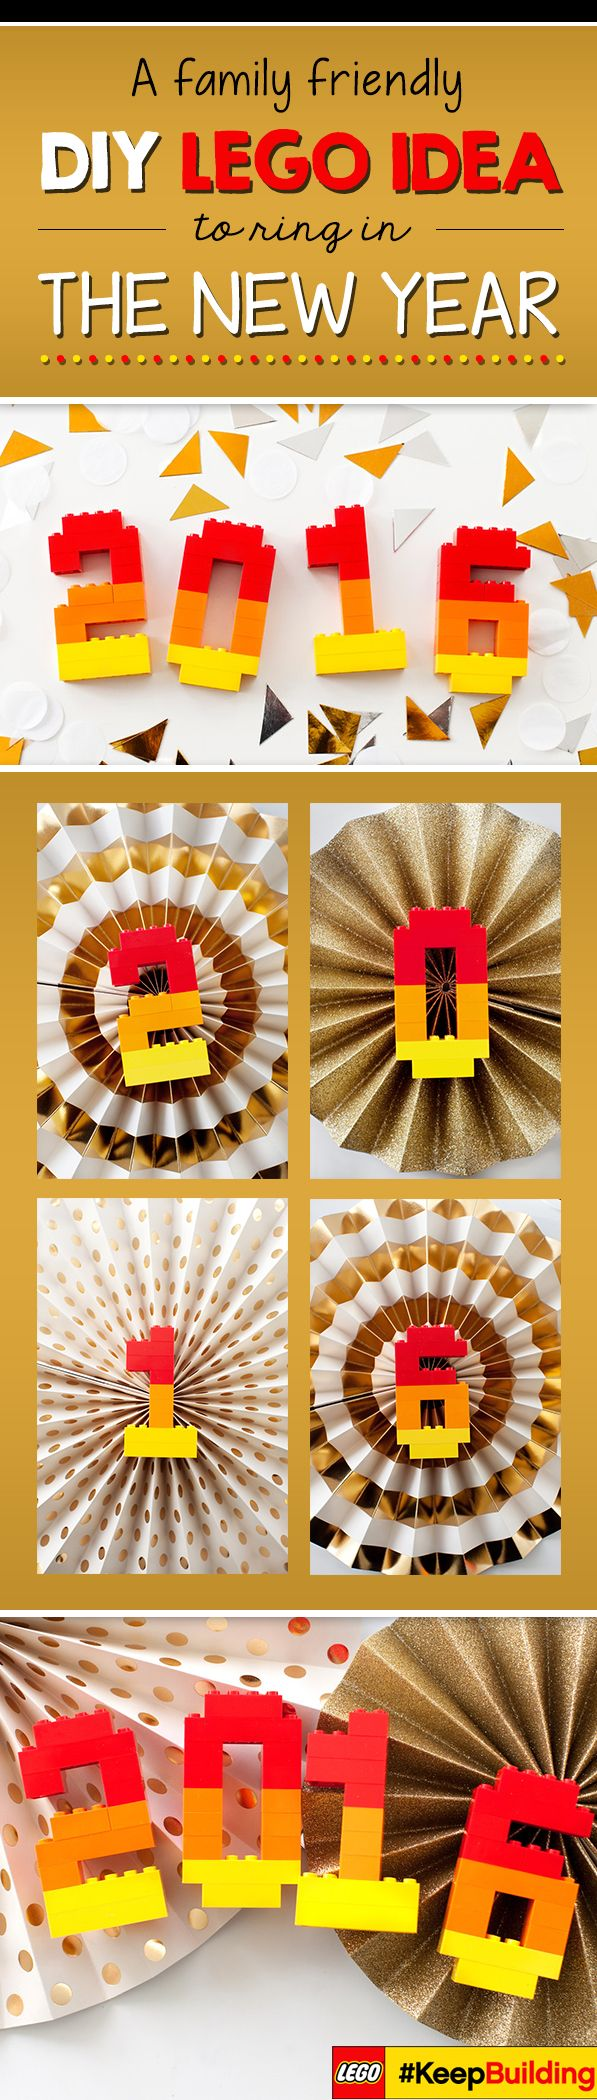 Ring in 2016 with a DIY LEGO New Years Centerpiece.  Find number building instructions and more on our LEGO #KeepBuilding pinterest board!